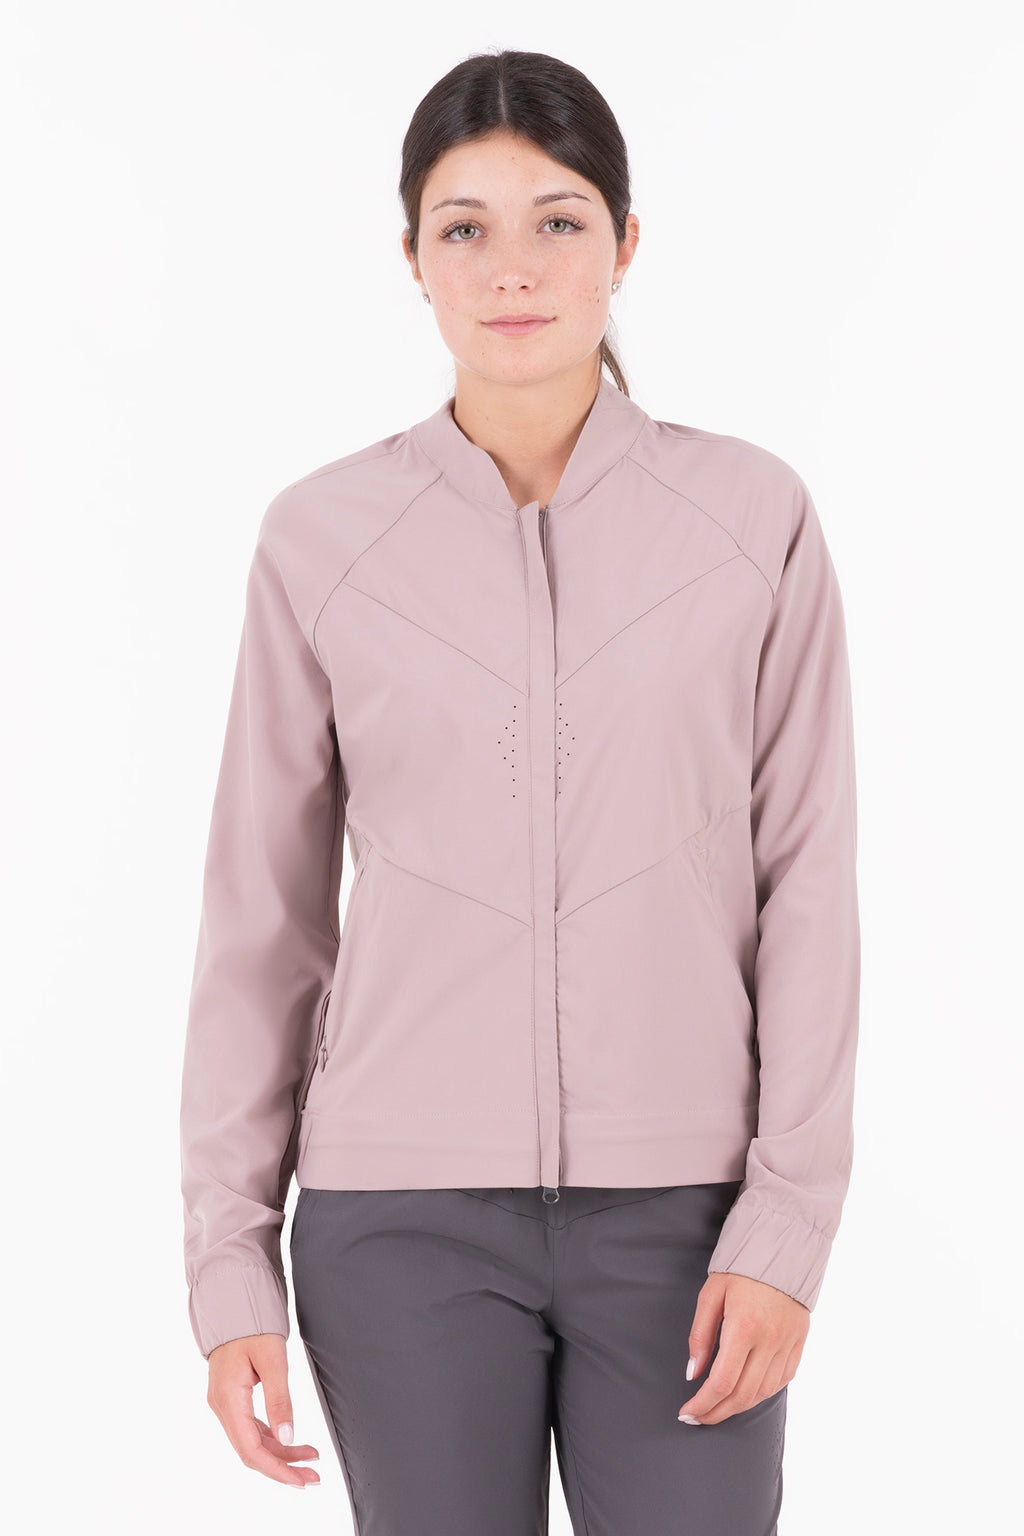 Silvana - Light Woven Mix Light-Weight, Short Jacket